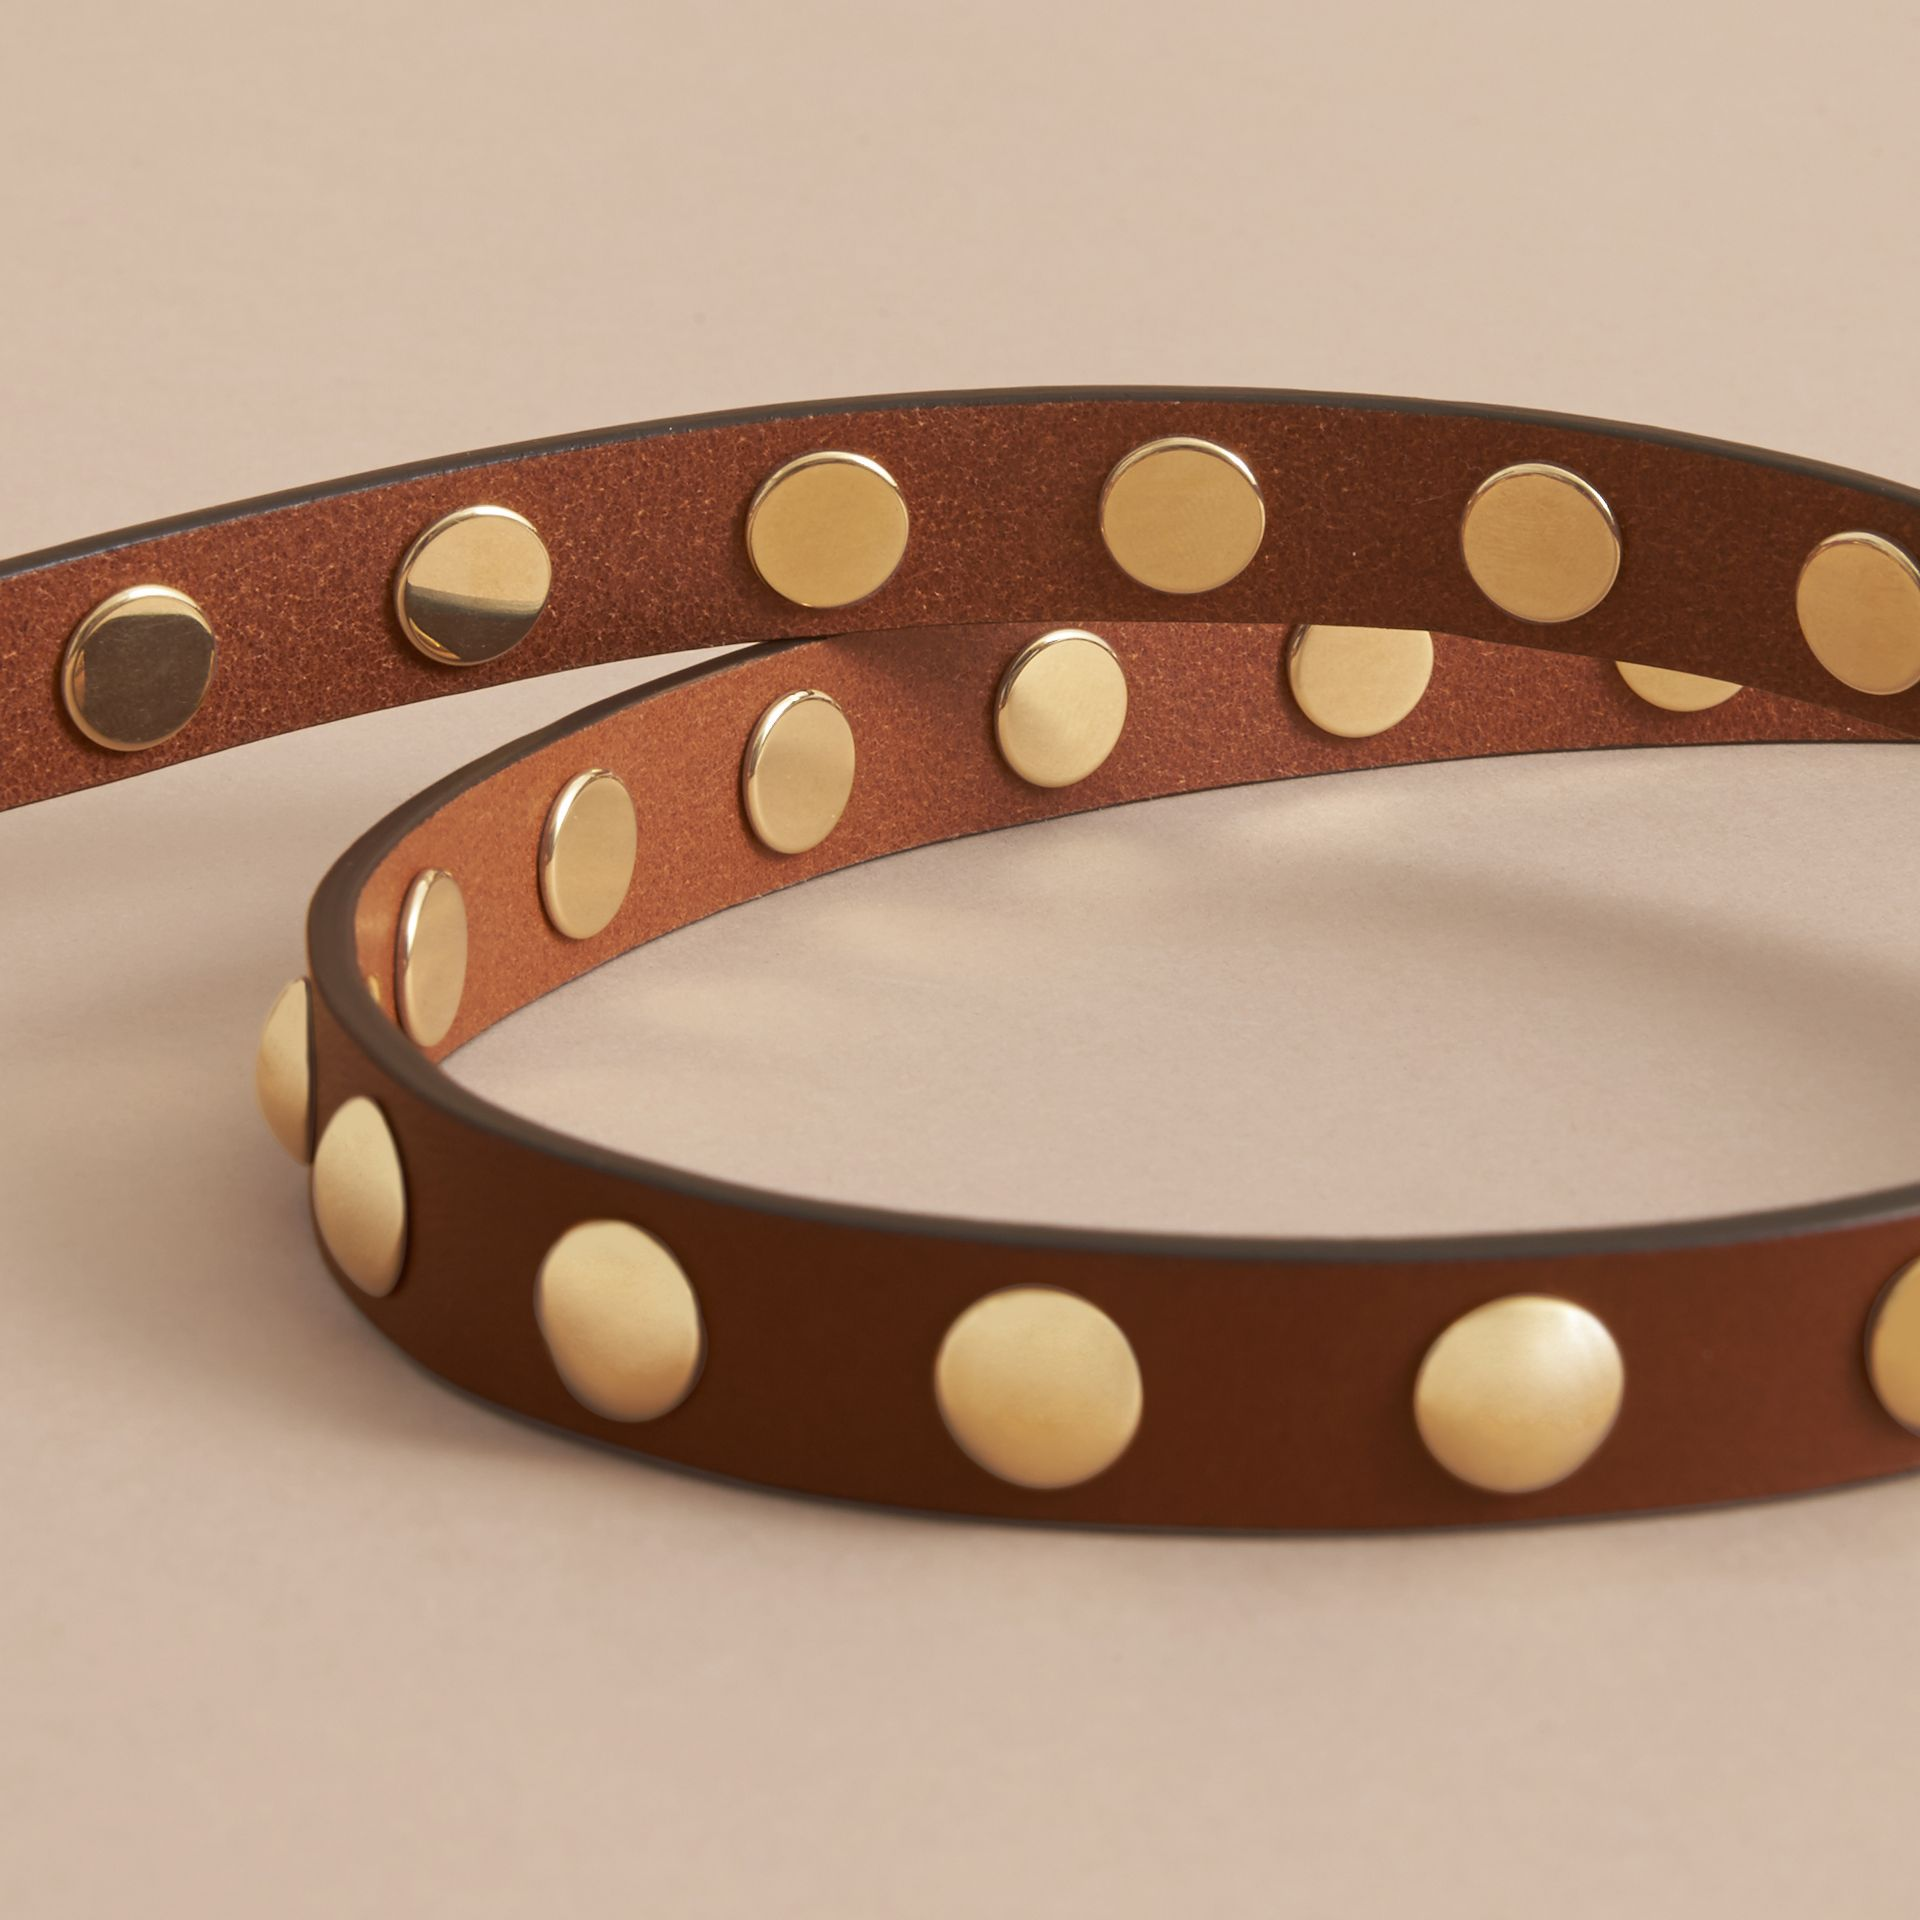 Studded Bridle Leather Double-wrap Belt in Tan - Women | Burberry - gallery image 4